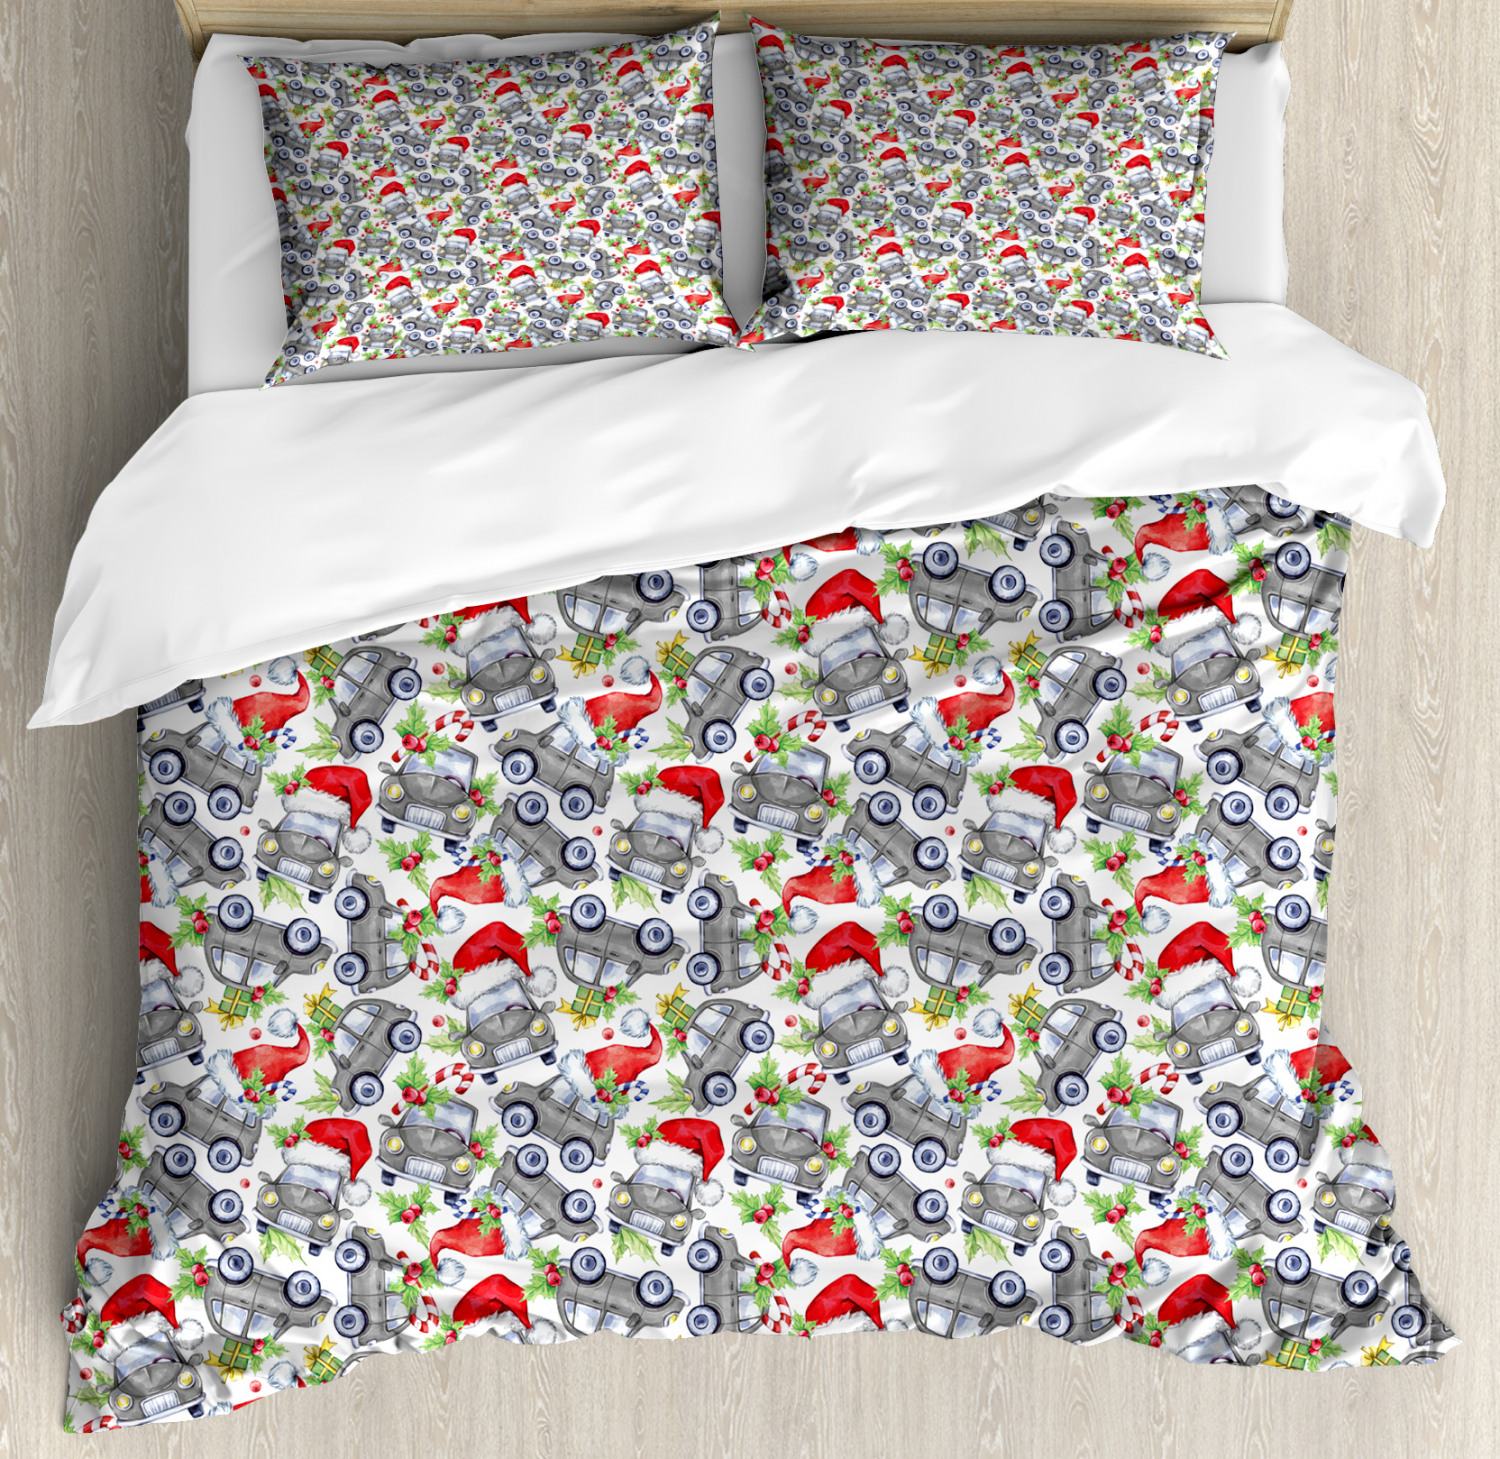 Colorful-Cars-Duvet-Cover-Set-Twin-Queen-King-Sizes-with-Pillow-Shams-Bedding miniature 19